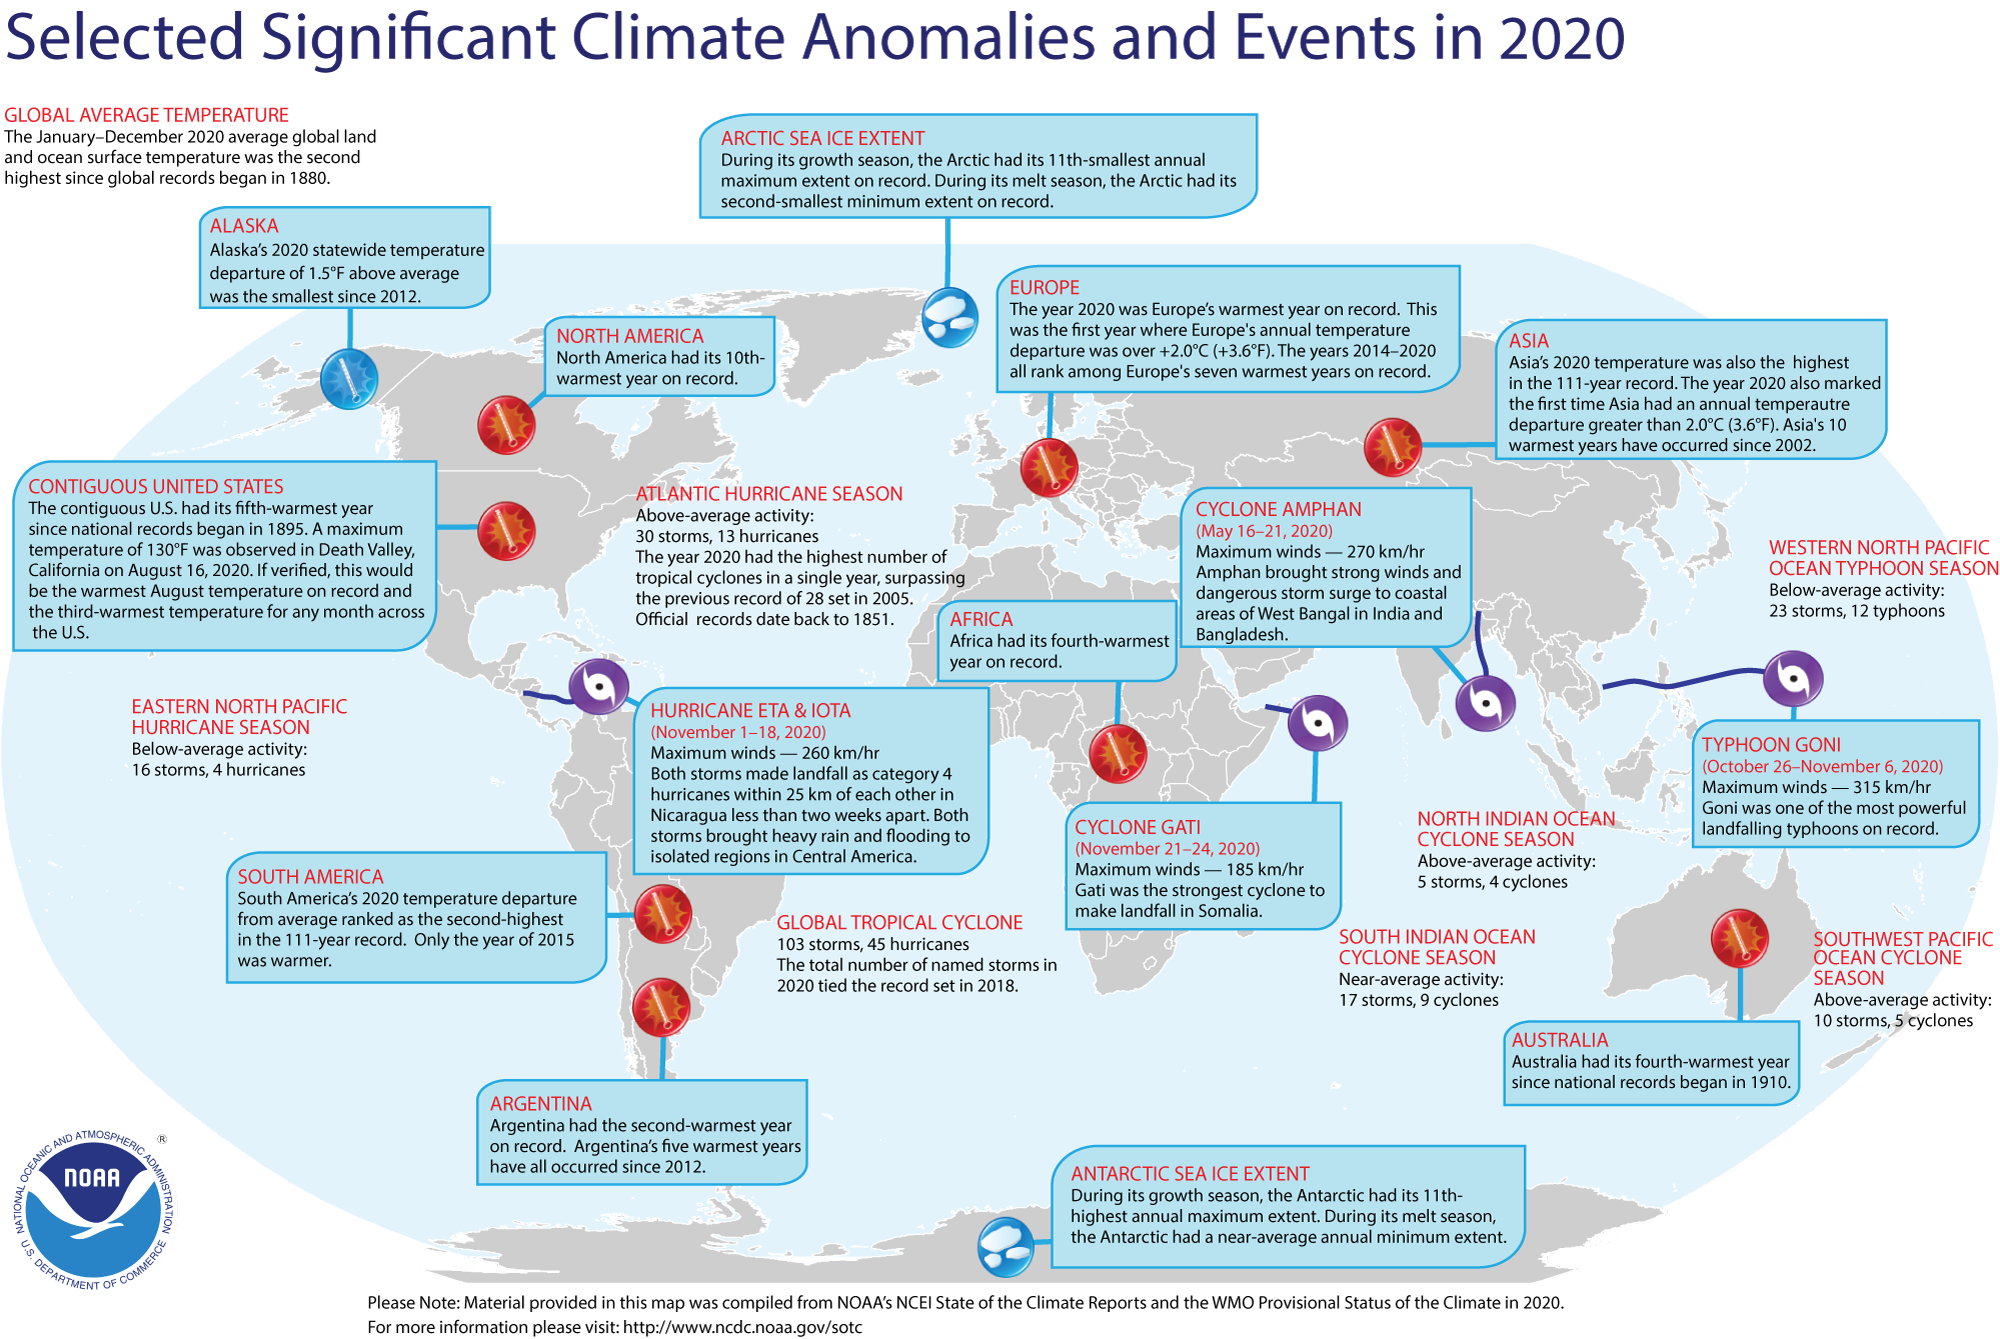 Image of world map with significant climate events from 2020 noted